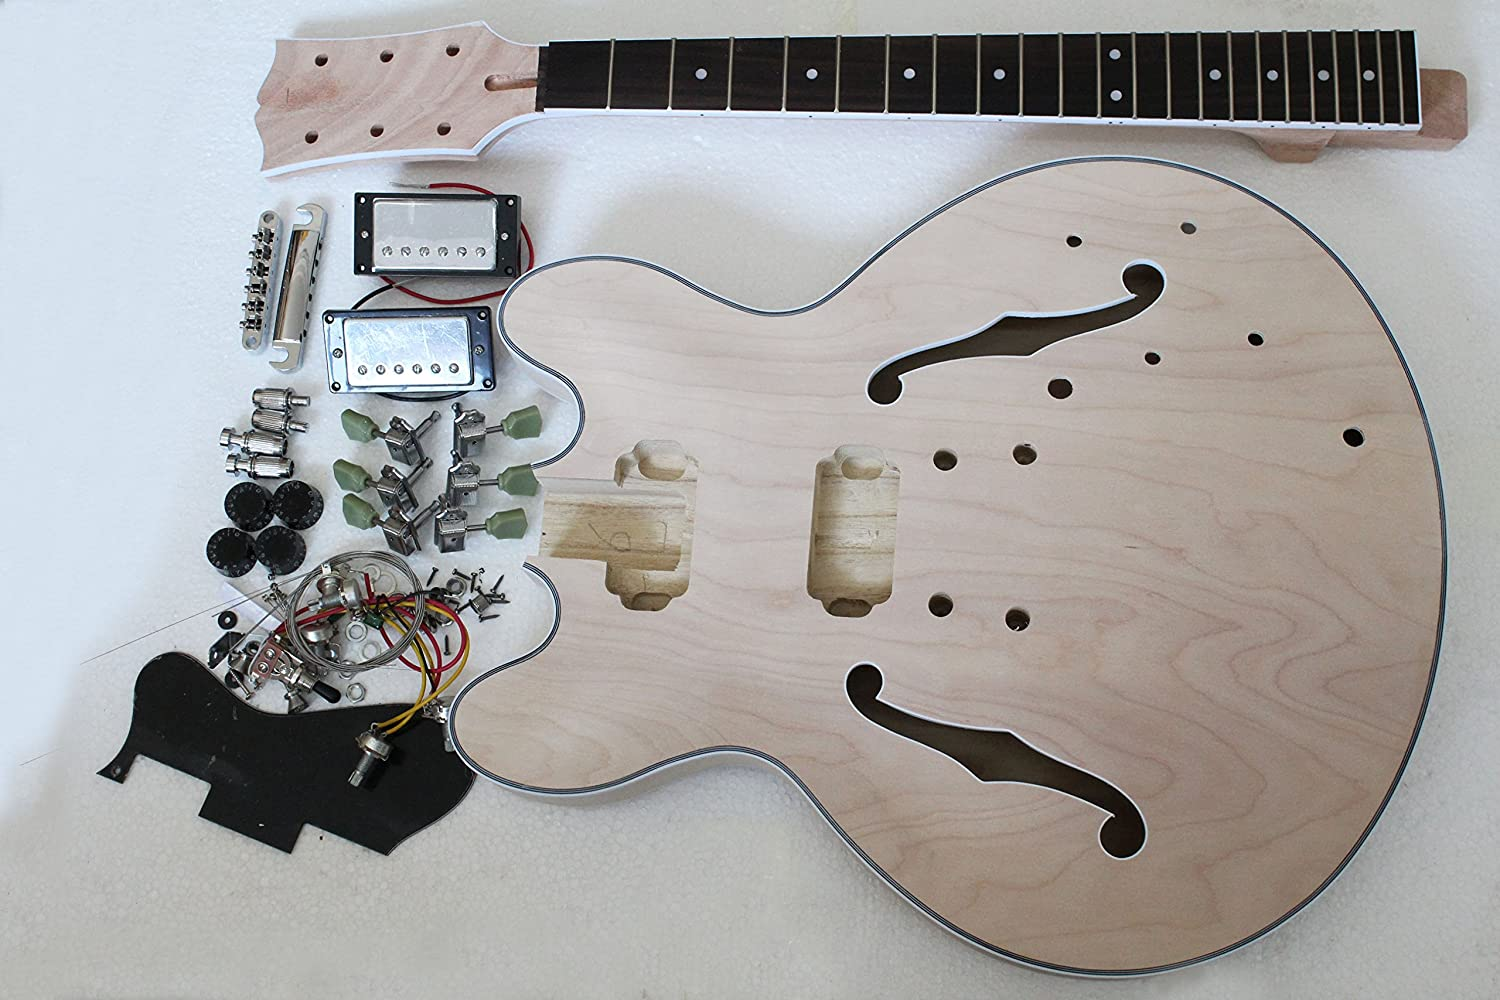 Project electric semi-hollow jazz guitar kit with all parts musoo 5215412154